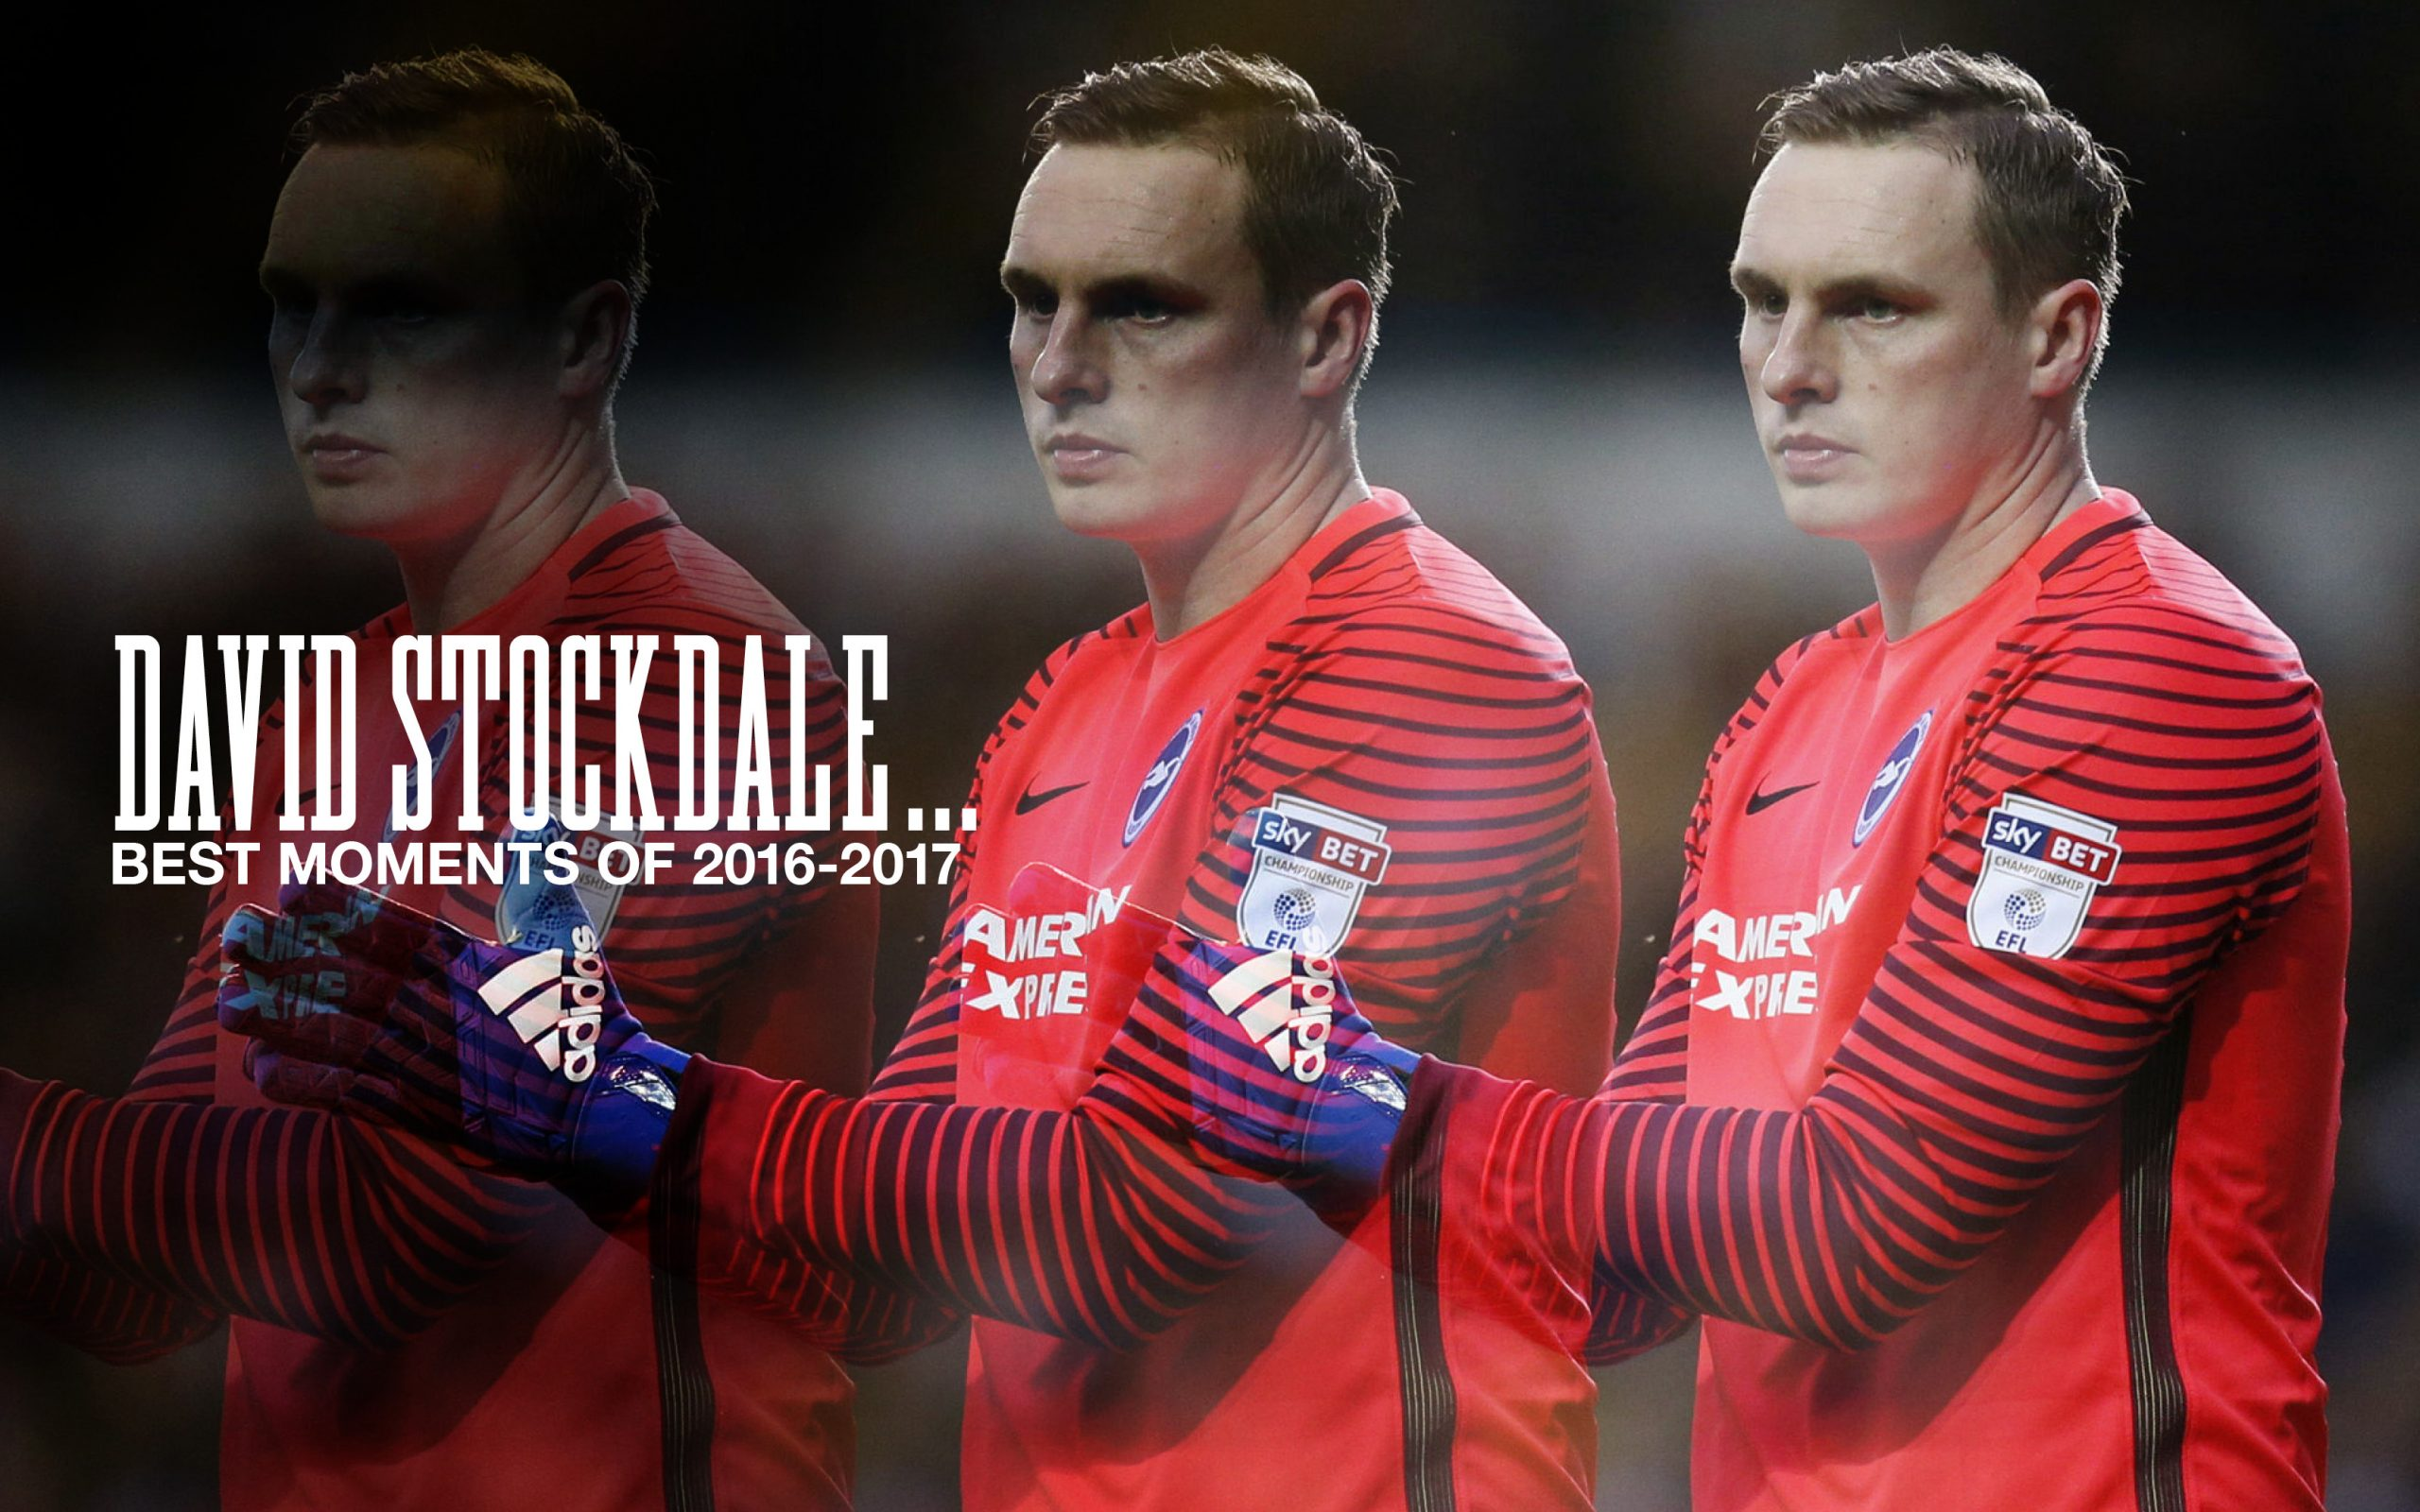 David Stockdale clapping his hands whilst in goal on the football pitch